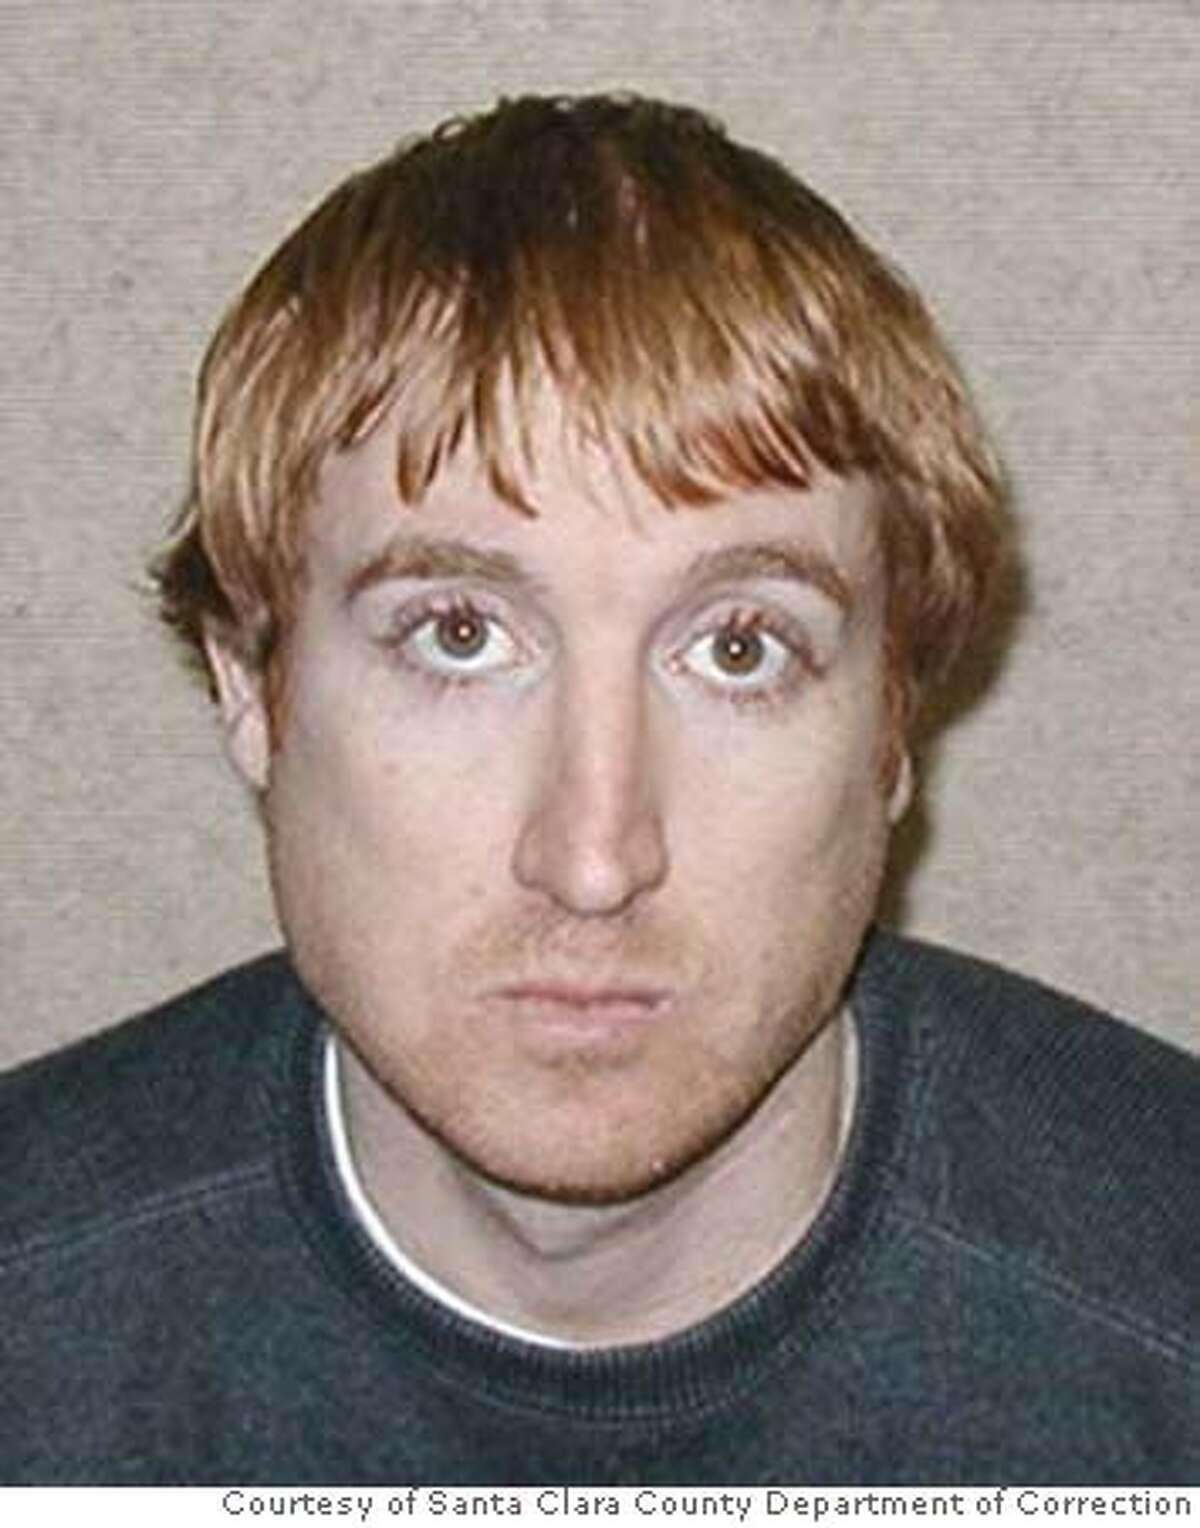 Booking mug for Capt. Sargent Binkley. Binkley, a former Army Ranger from Los Altos, faces a lengthy prison sentence for robbing two pharmacies of drugs at gunpoint in 2006. Photos Courtesy of Santa Clara County Department of Correction MANDATORY CREDIT FOR PHOTOG AND SAN FRANCISCO CHRONICLE/NO SALES-MAGS OUT